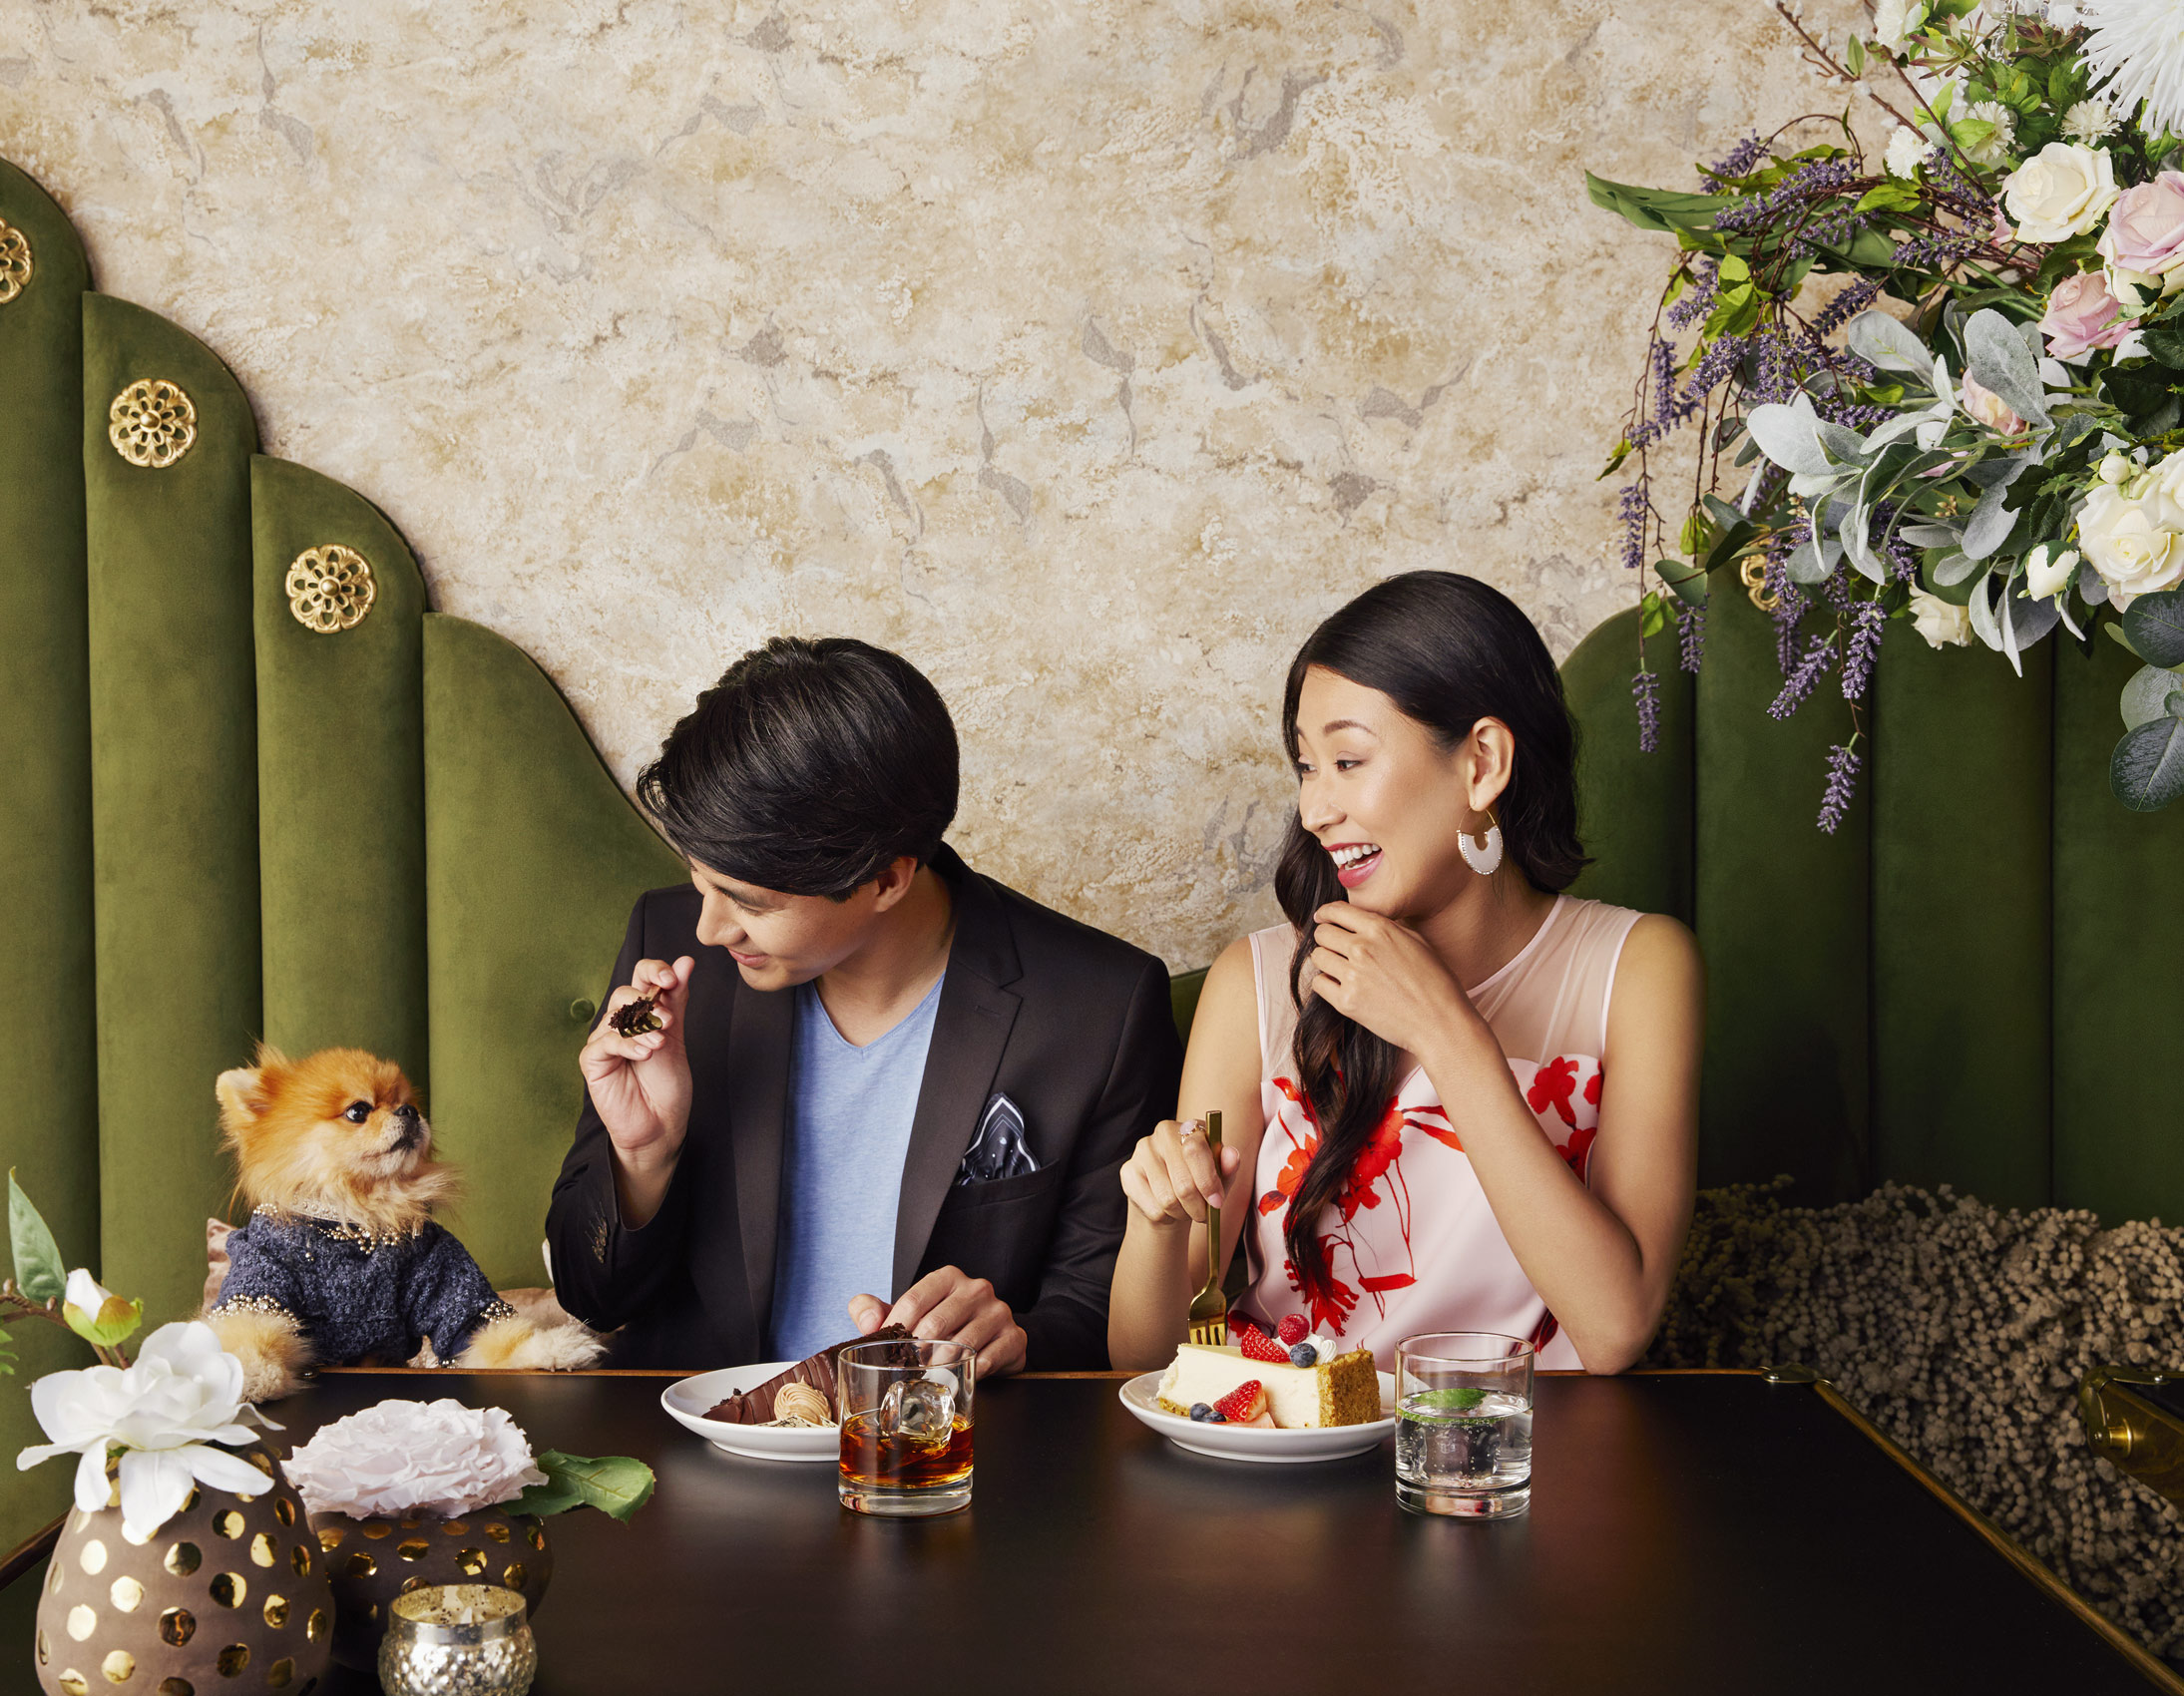 Couple feeding a puppy at a table in a restaurant - Kim Genevieve Los Angeles Lifestyle Photographer